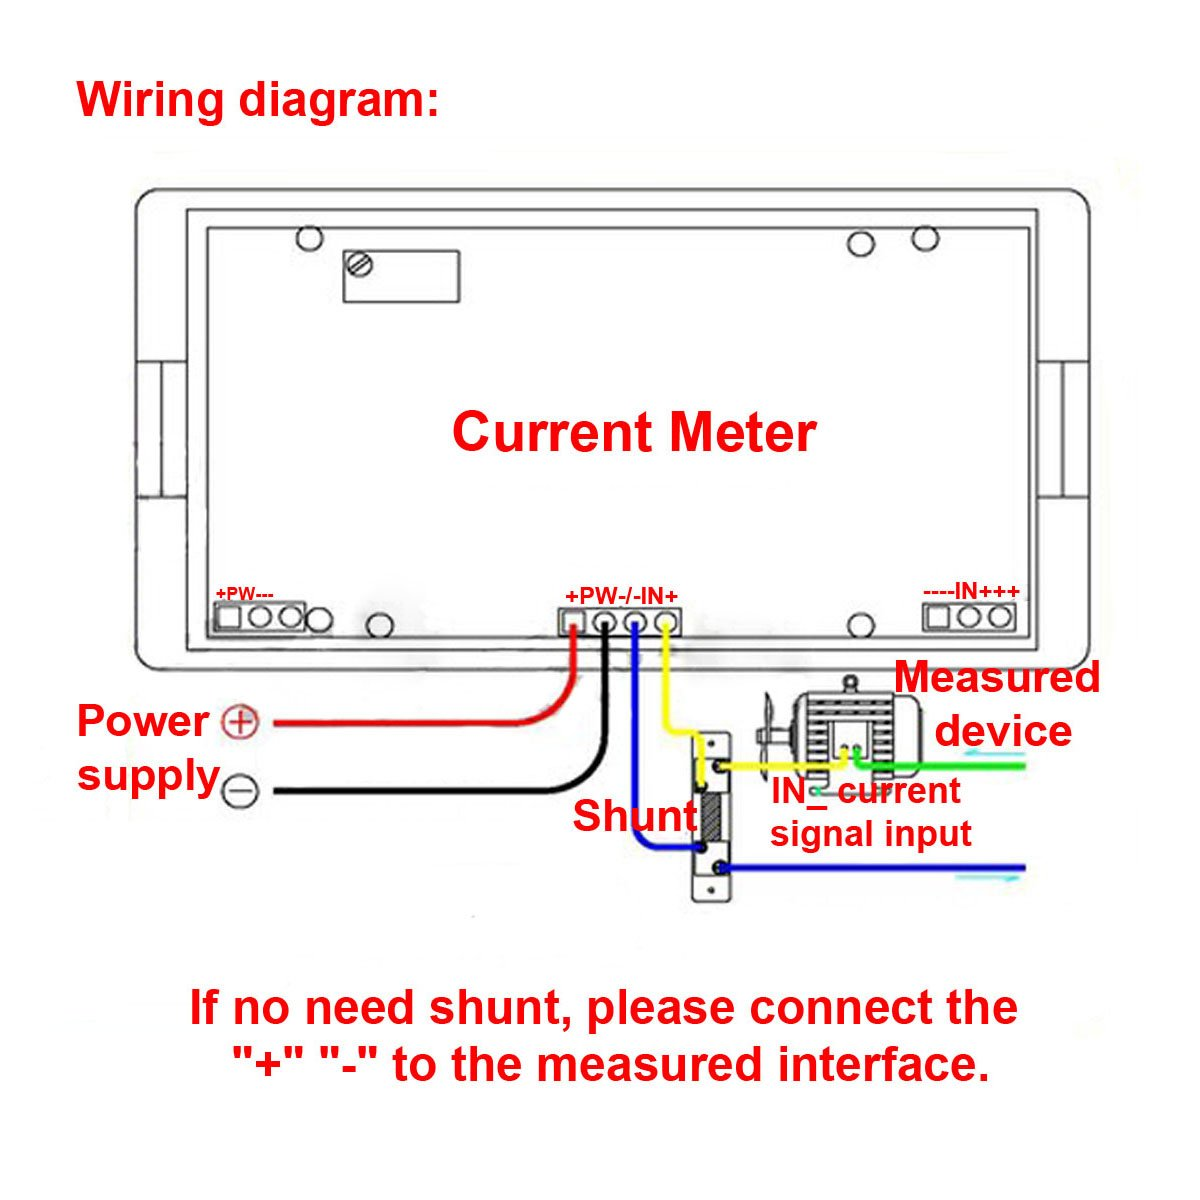 ac amp meter wiring diagram   27 wiring diagram images